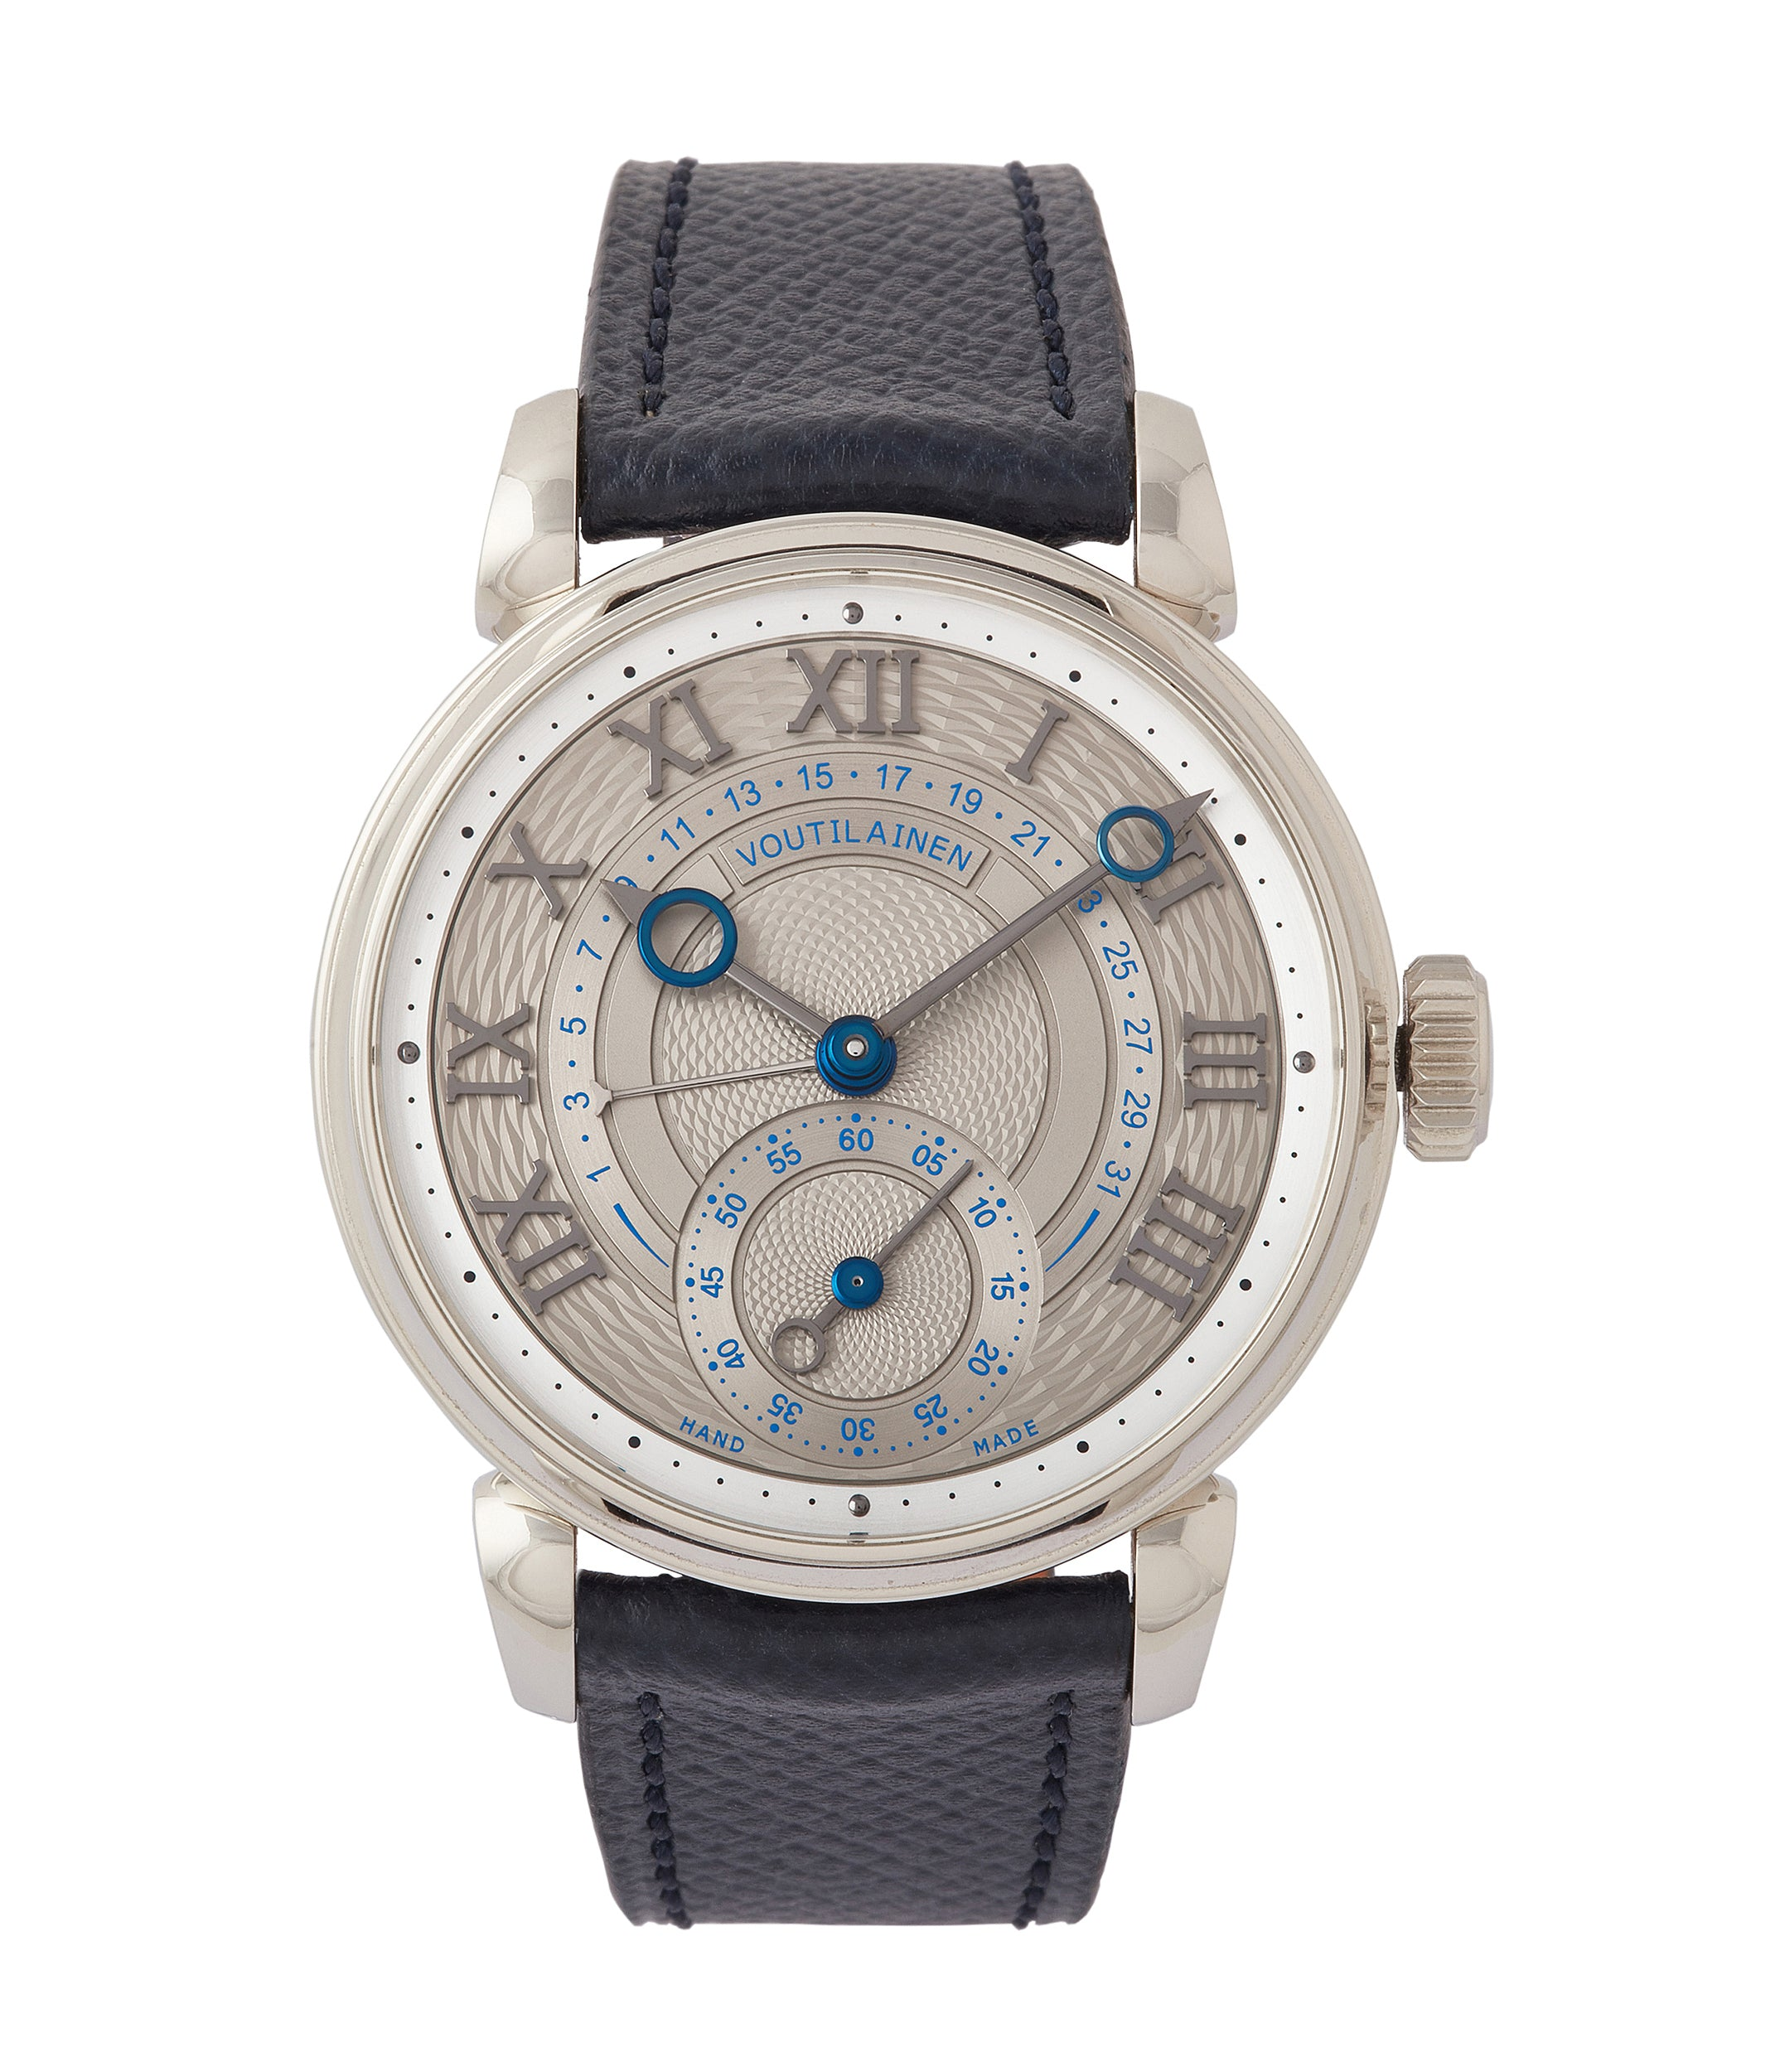 buy Voutilainen 217QRS Retrograde Date platinum dress watch for sale online at A Collected Man London approved re-seller of independent watchmakers